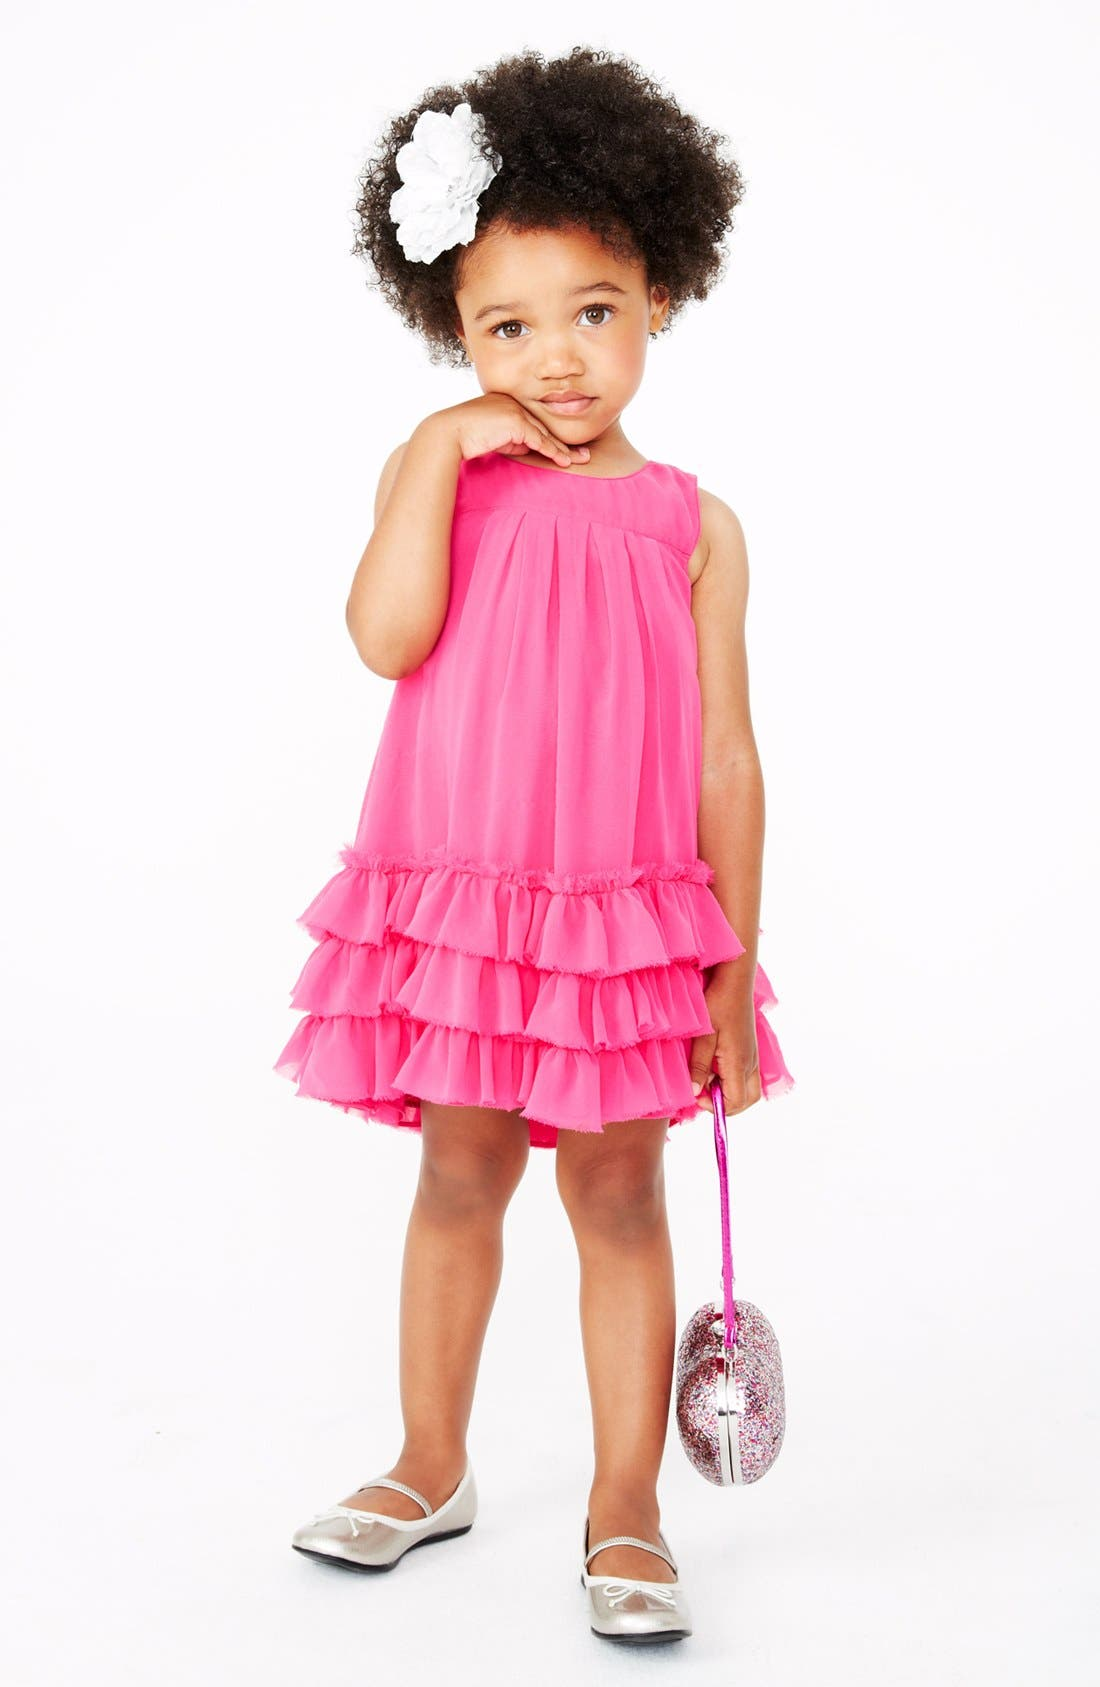 Main Image - Pippa & Julie Chiffon Dress & Accessories (Toddler Girls)